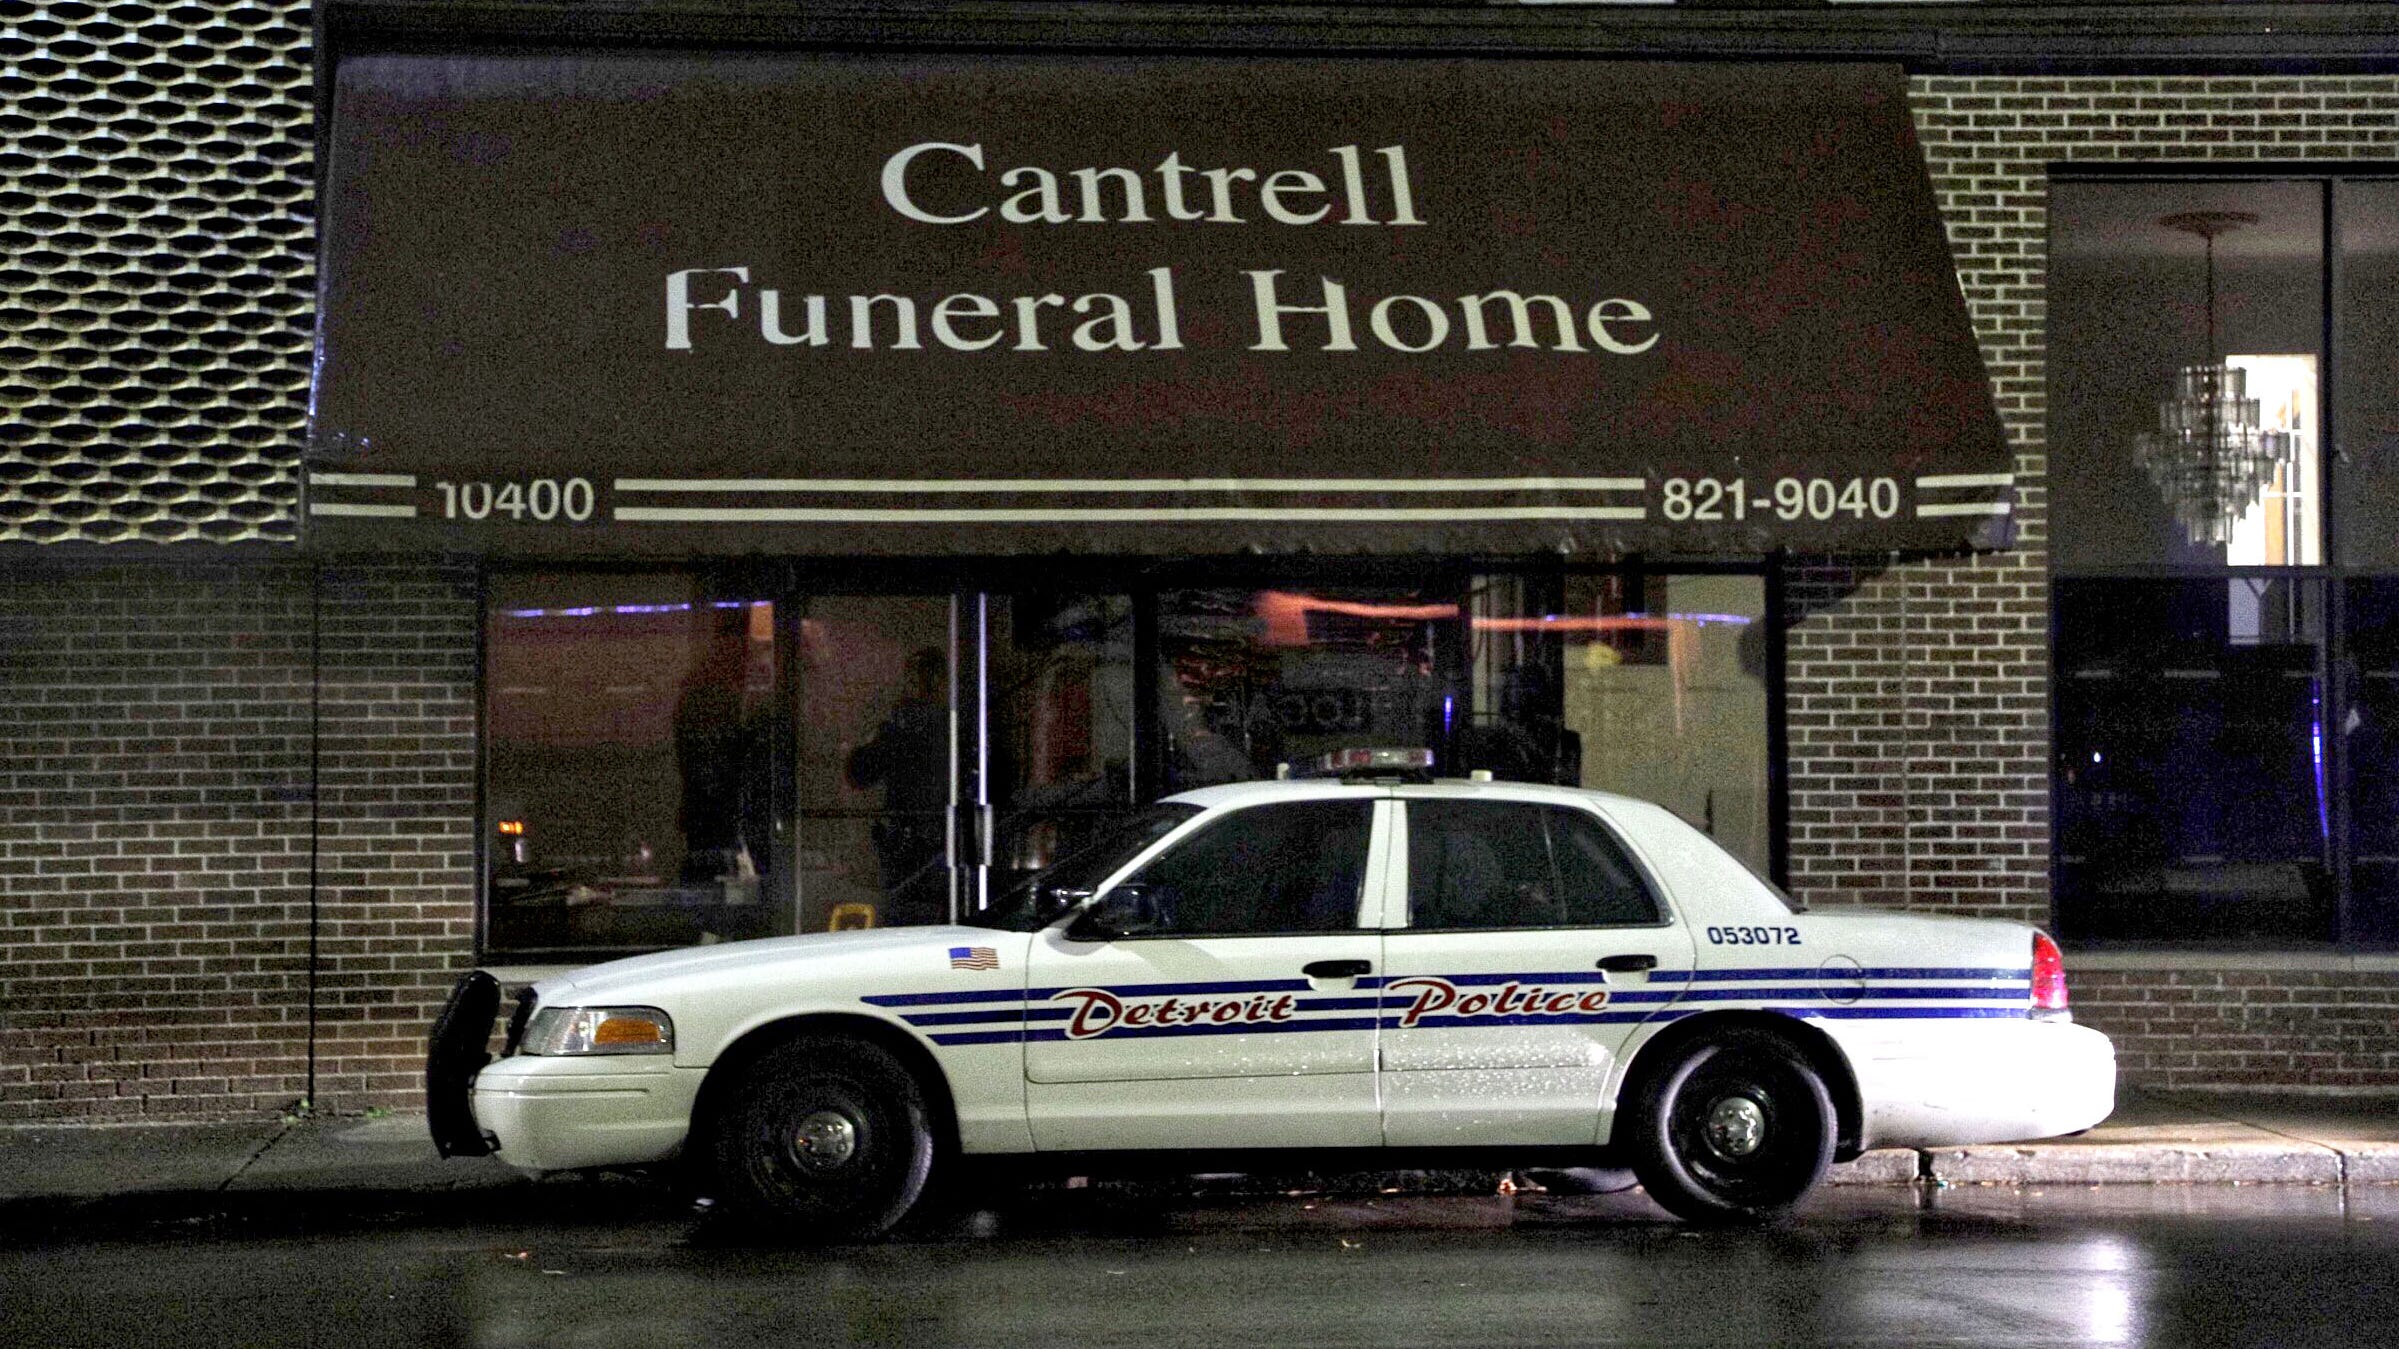 Police: 11 infant bodies found in ceiling of former funeral home